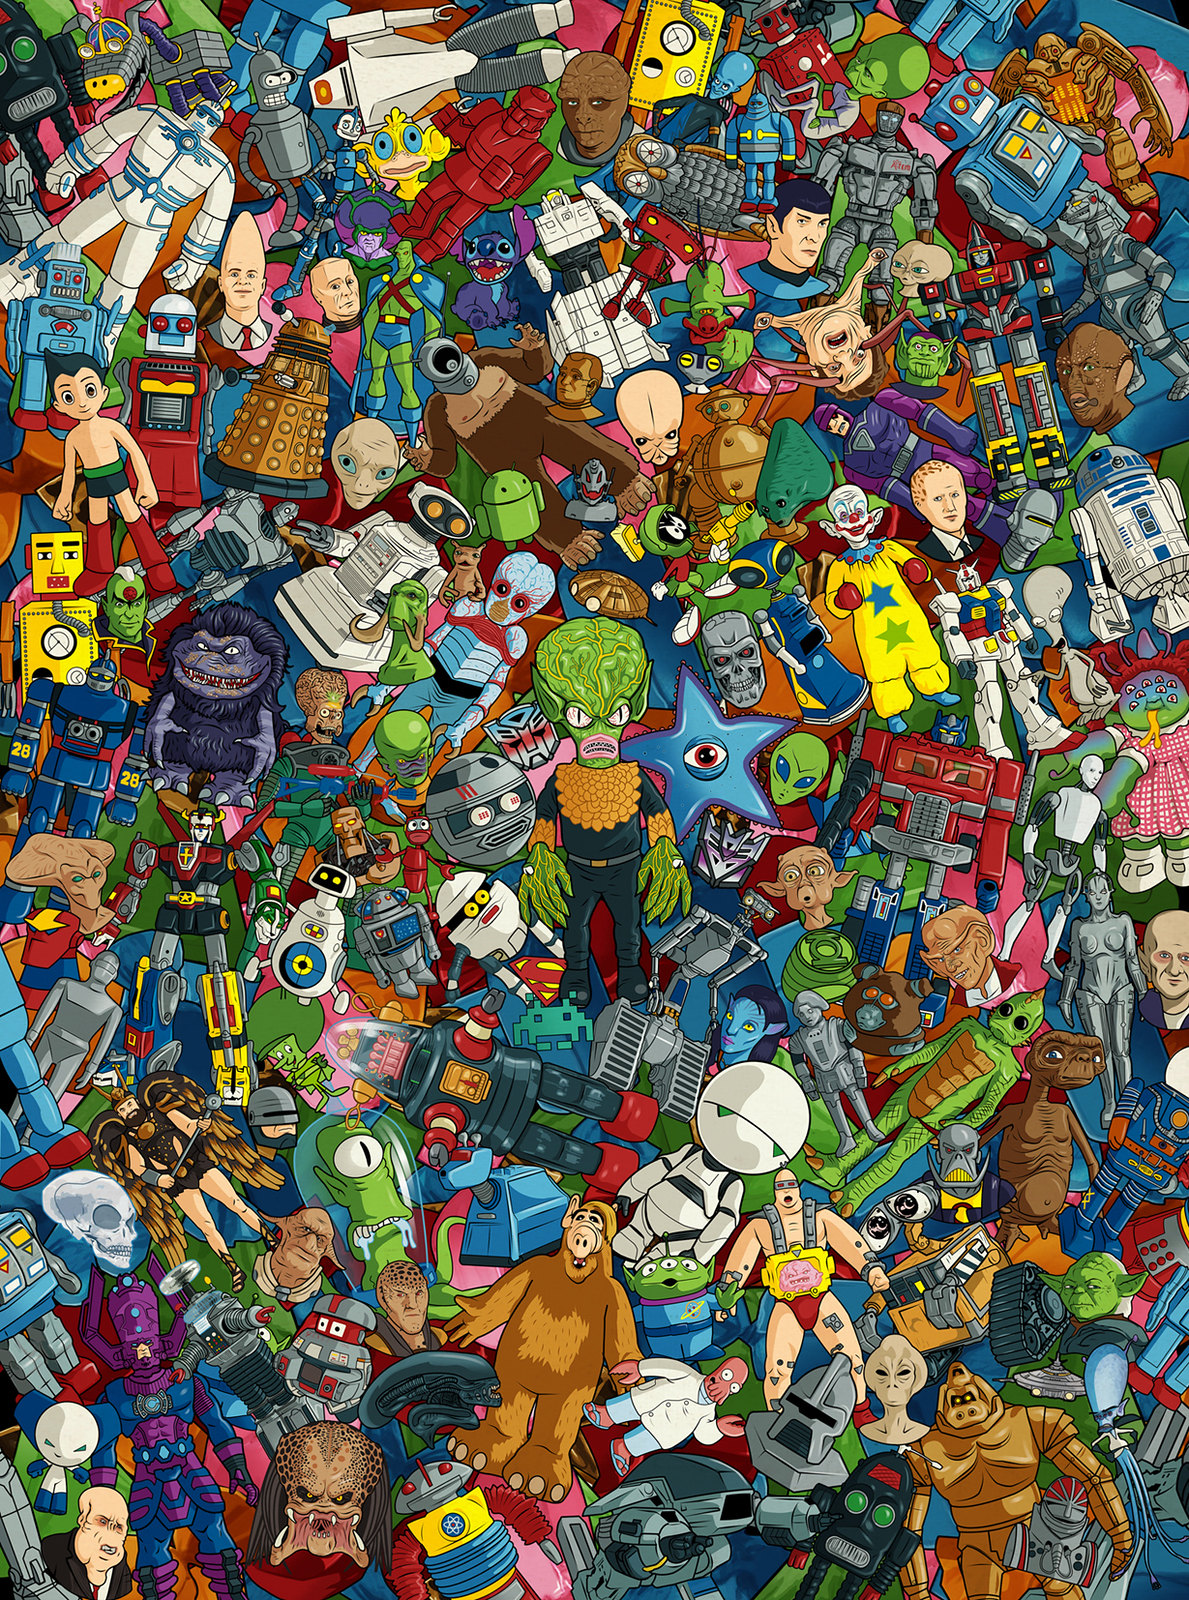 Robots & Aliens by Bill McConkey